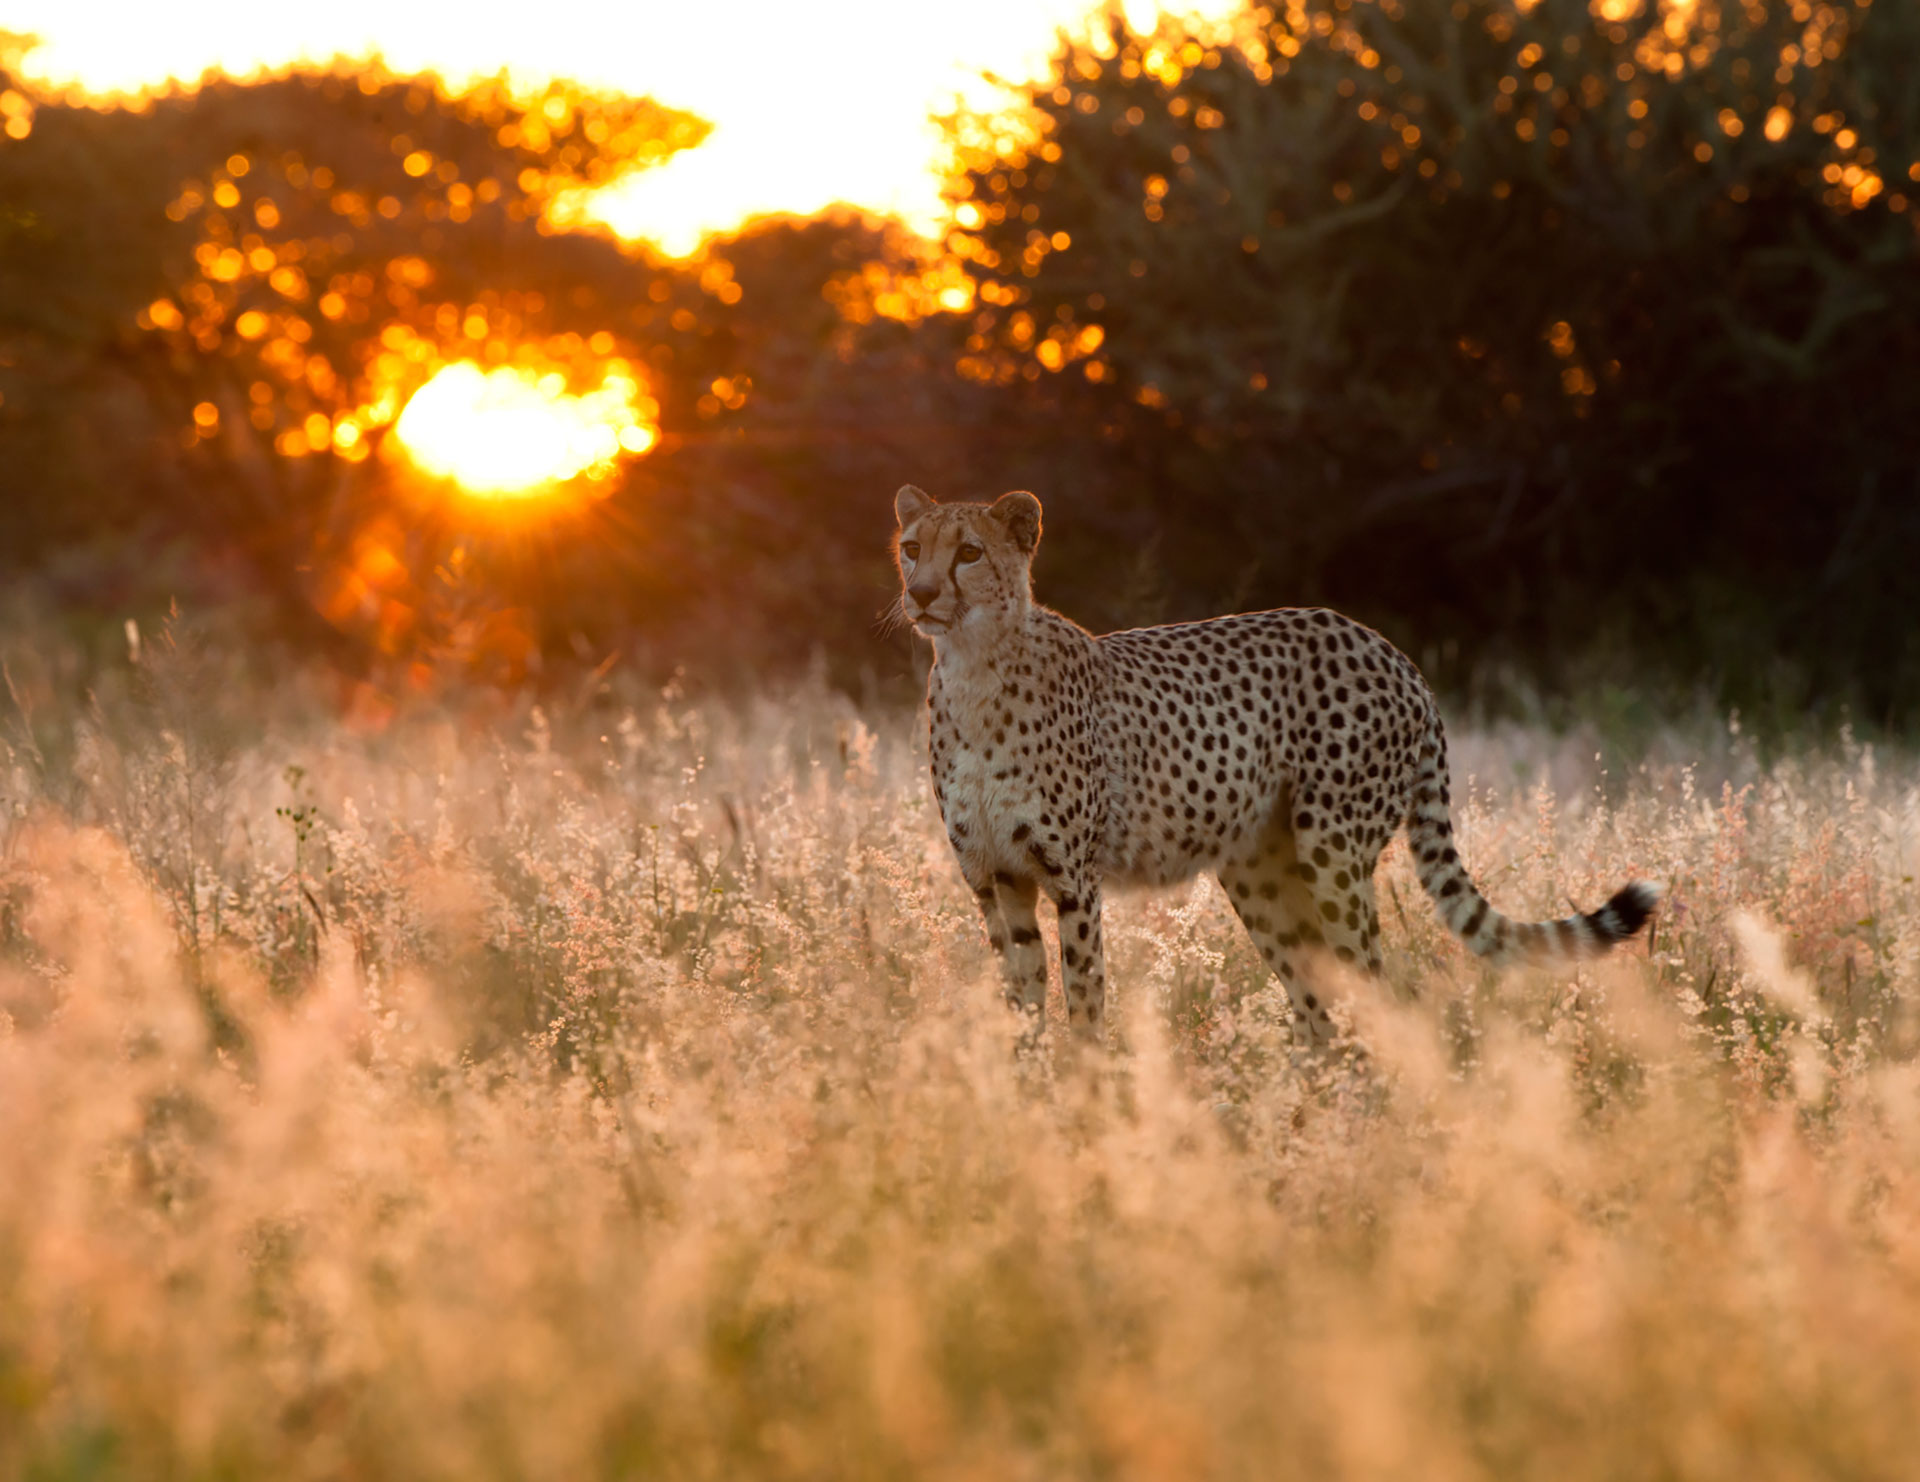 cheetah-sunrise-okonjima-bushcamp-namibiacamps-nature-cm-travels-africat-foundation